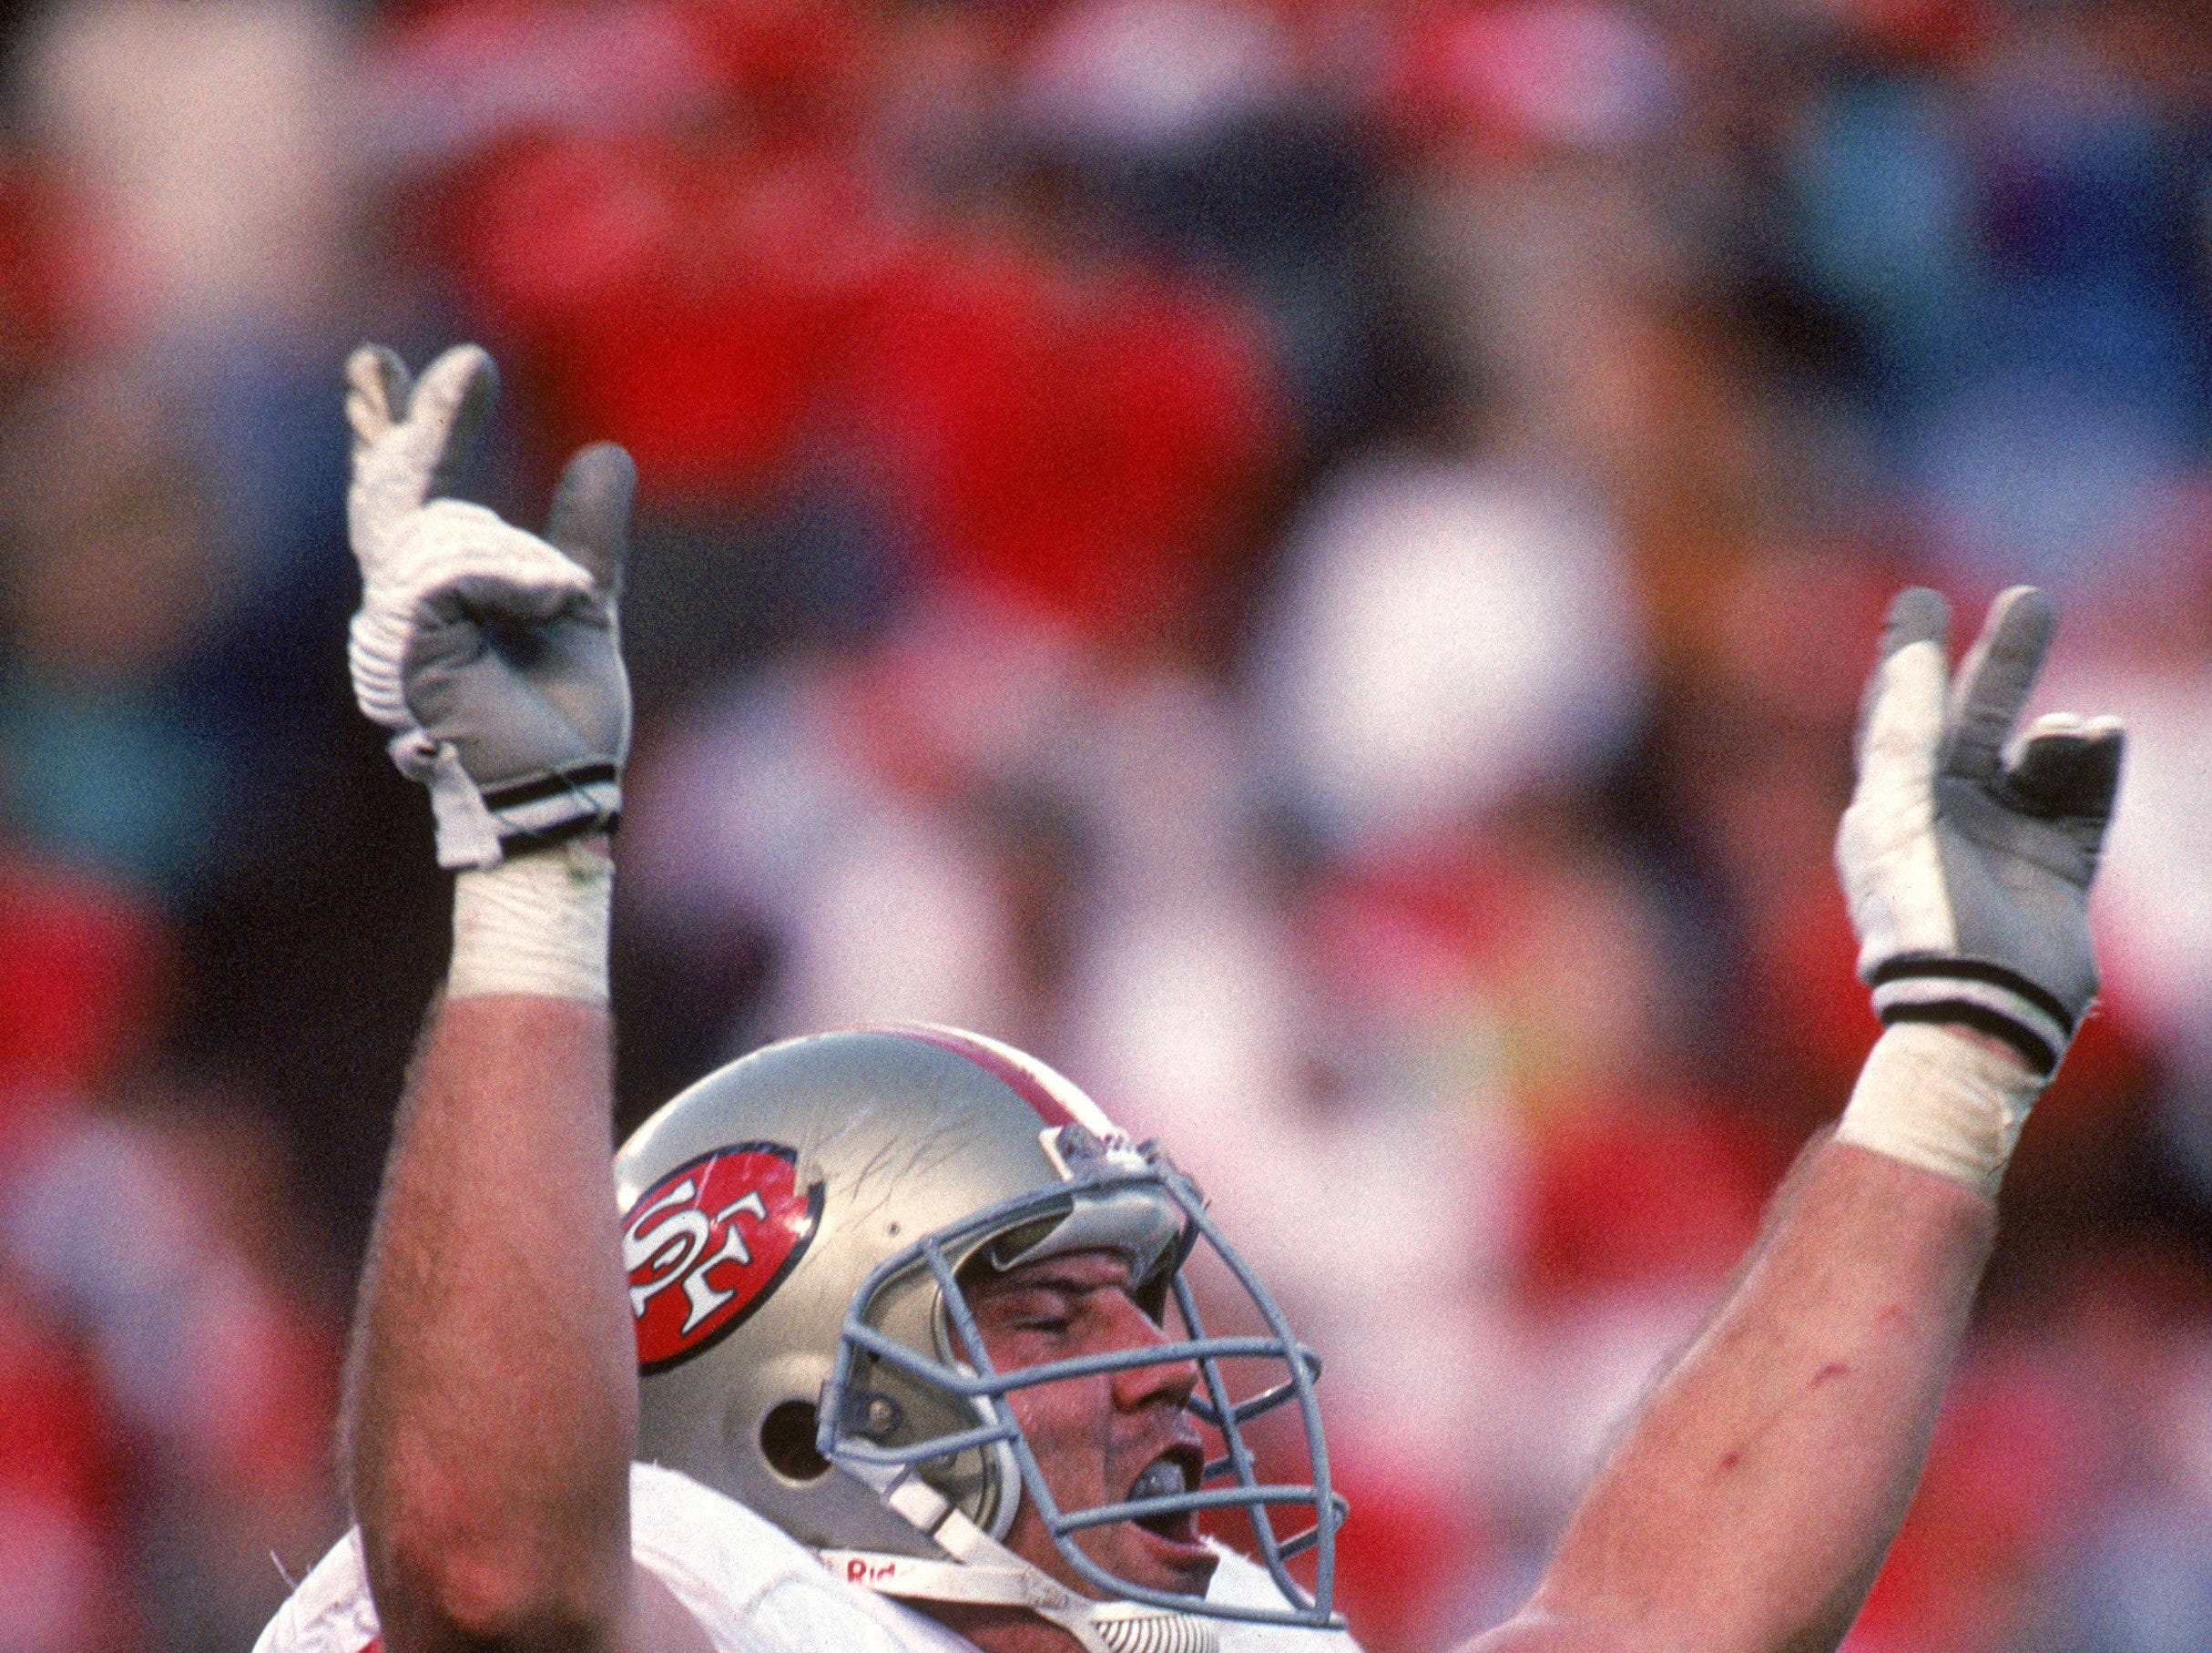 Melbourne High graduate Brian Bollinger was drafted by the San Francisco 49ers in the third round of the 1992 NFL Draft.